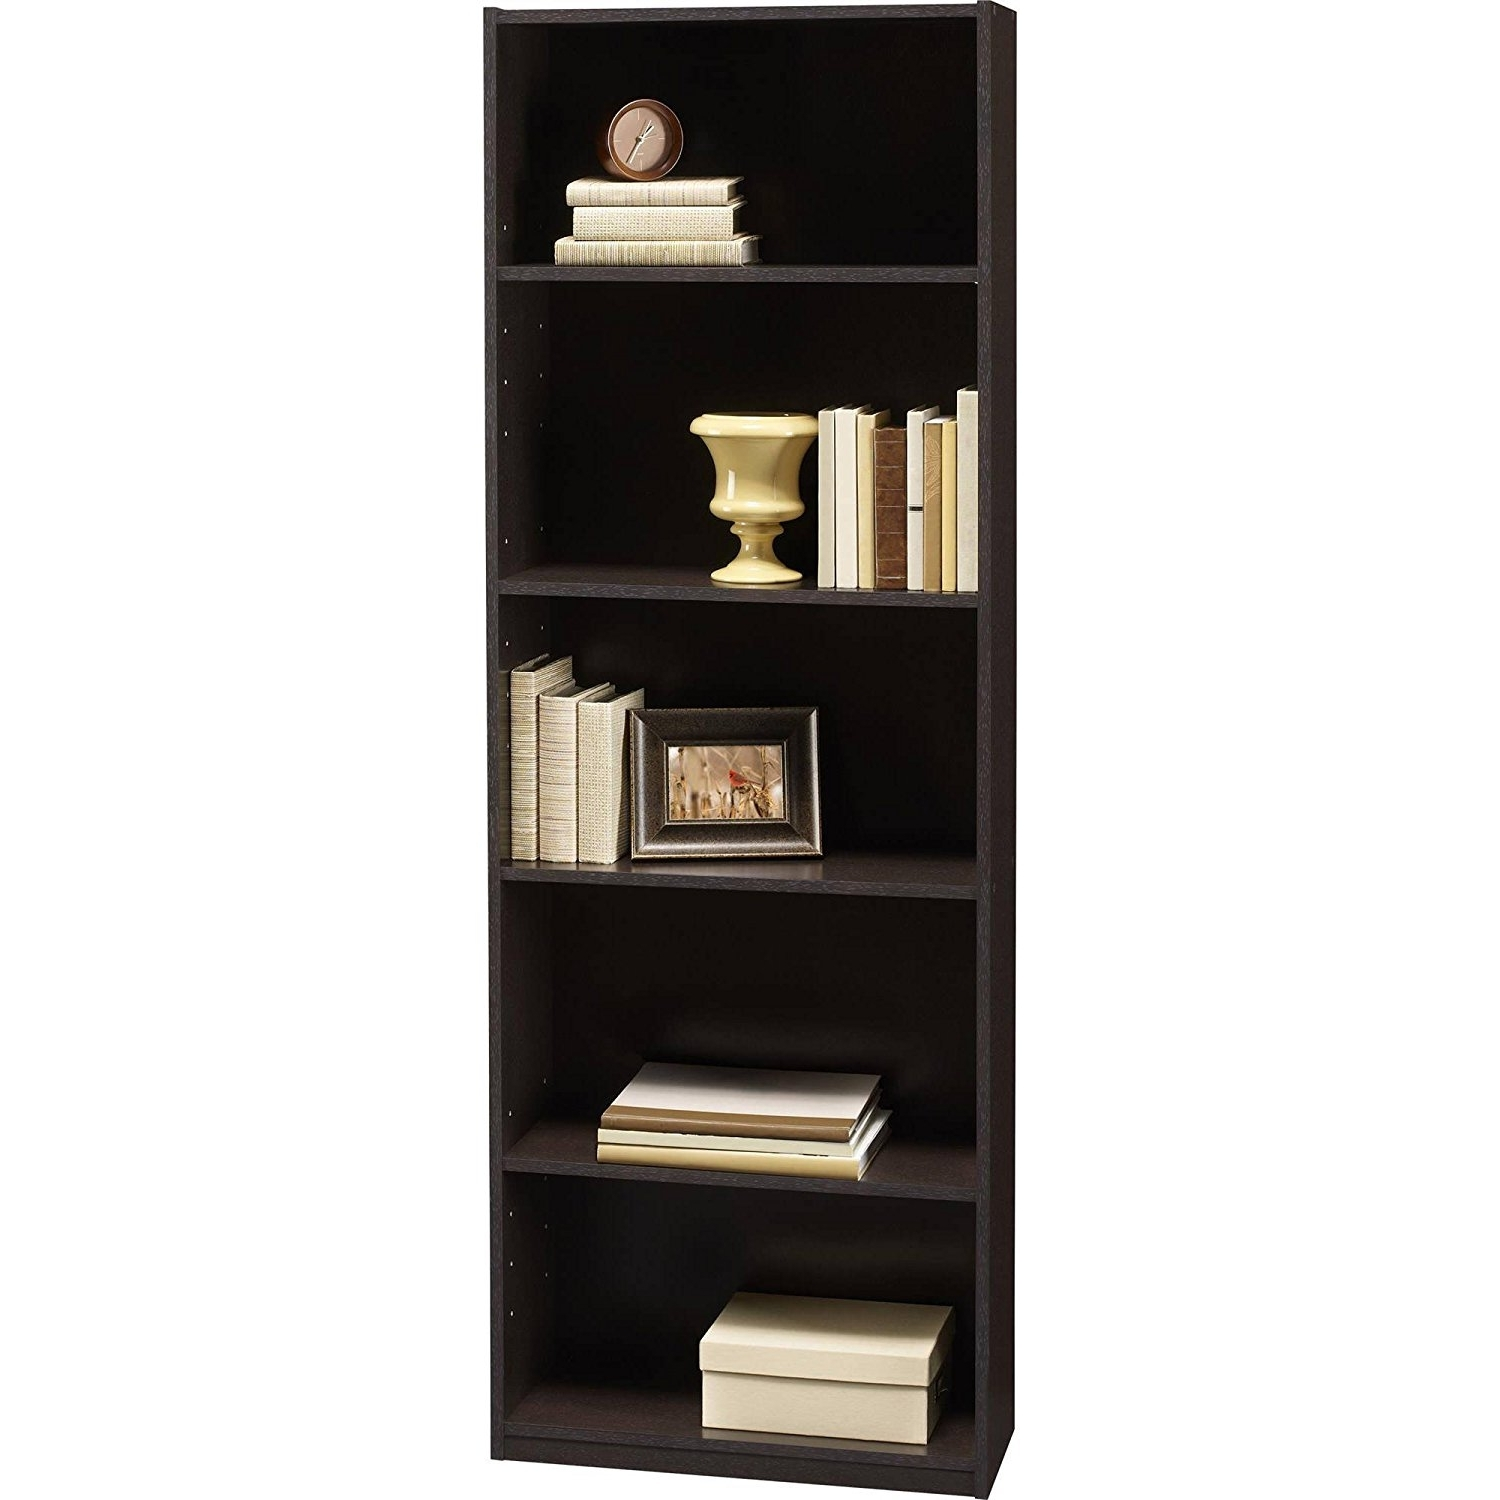 Amazon: Ameriwood 5 Shelf Bookcases, Set Of 2, Espresso With Regard To Most Current Espresso Bookcases (View 2 of 15)